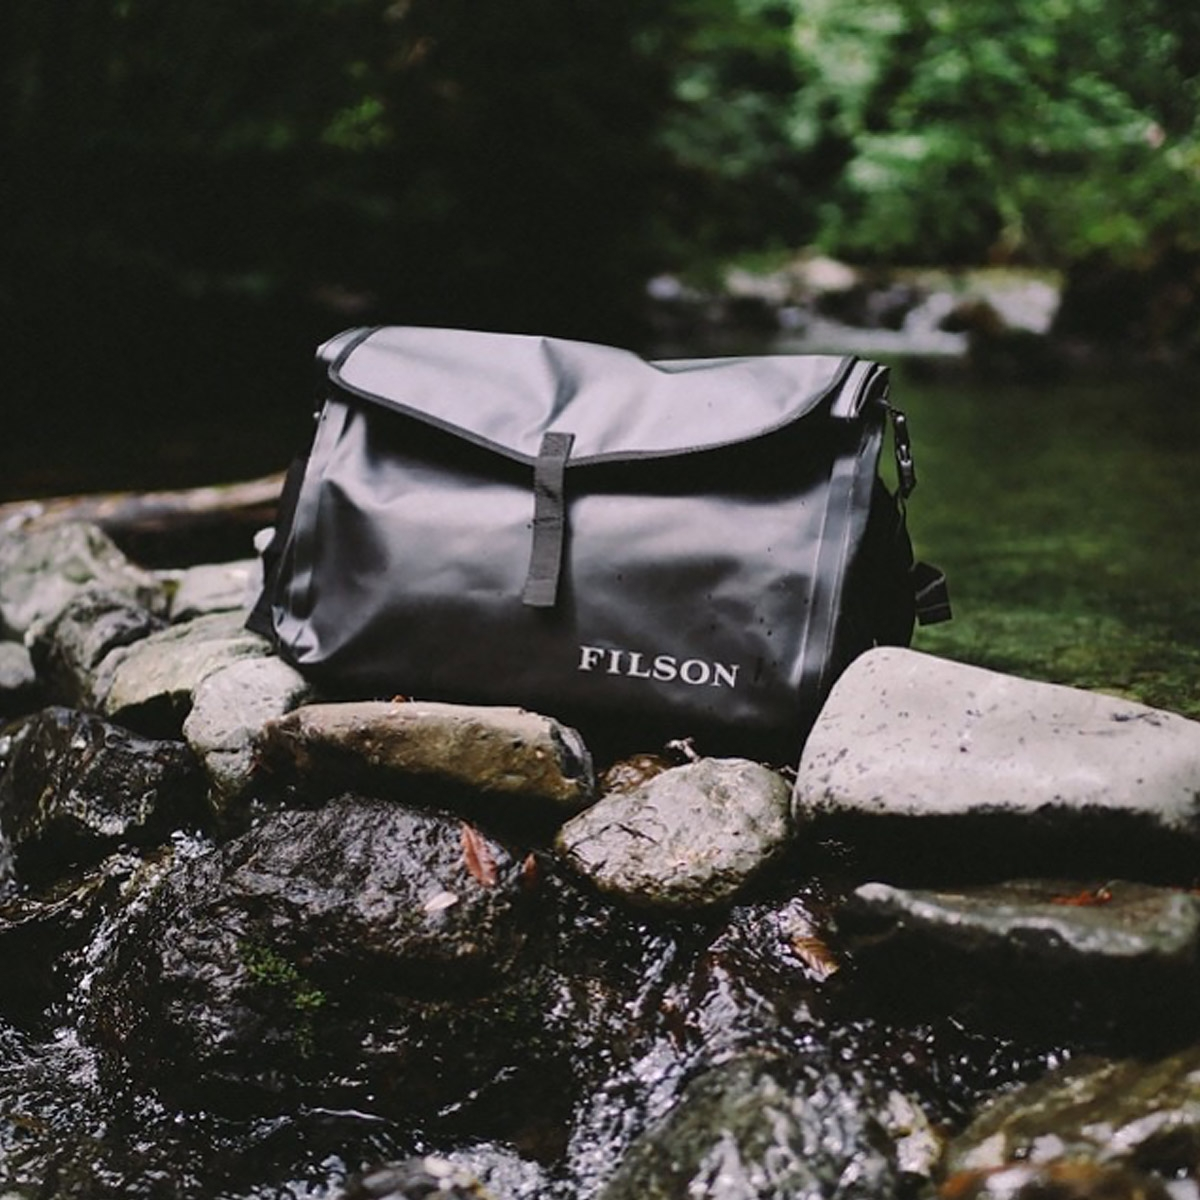 Filson Dry Messenger 11070157-Black, Dry Messenger Bag for keeping things dry on to go